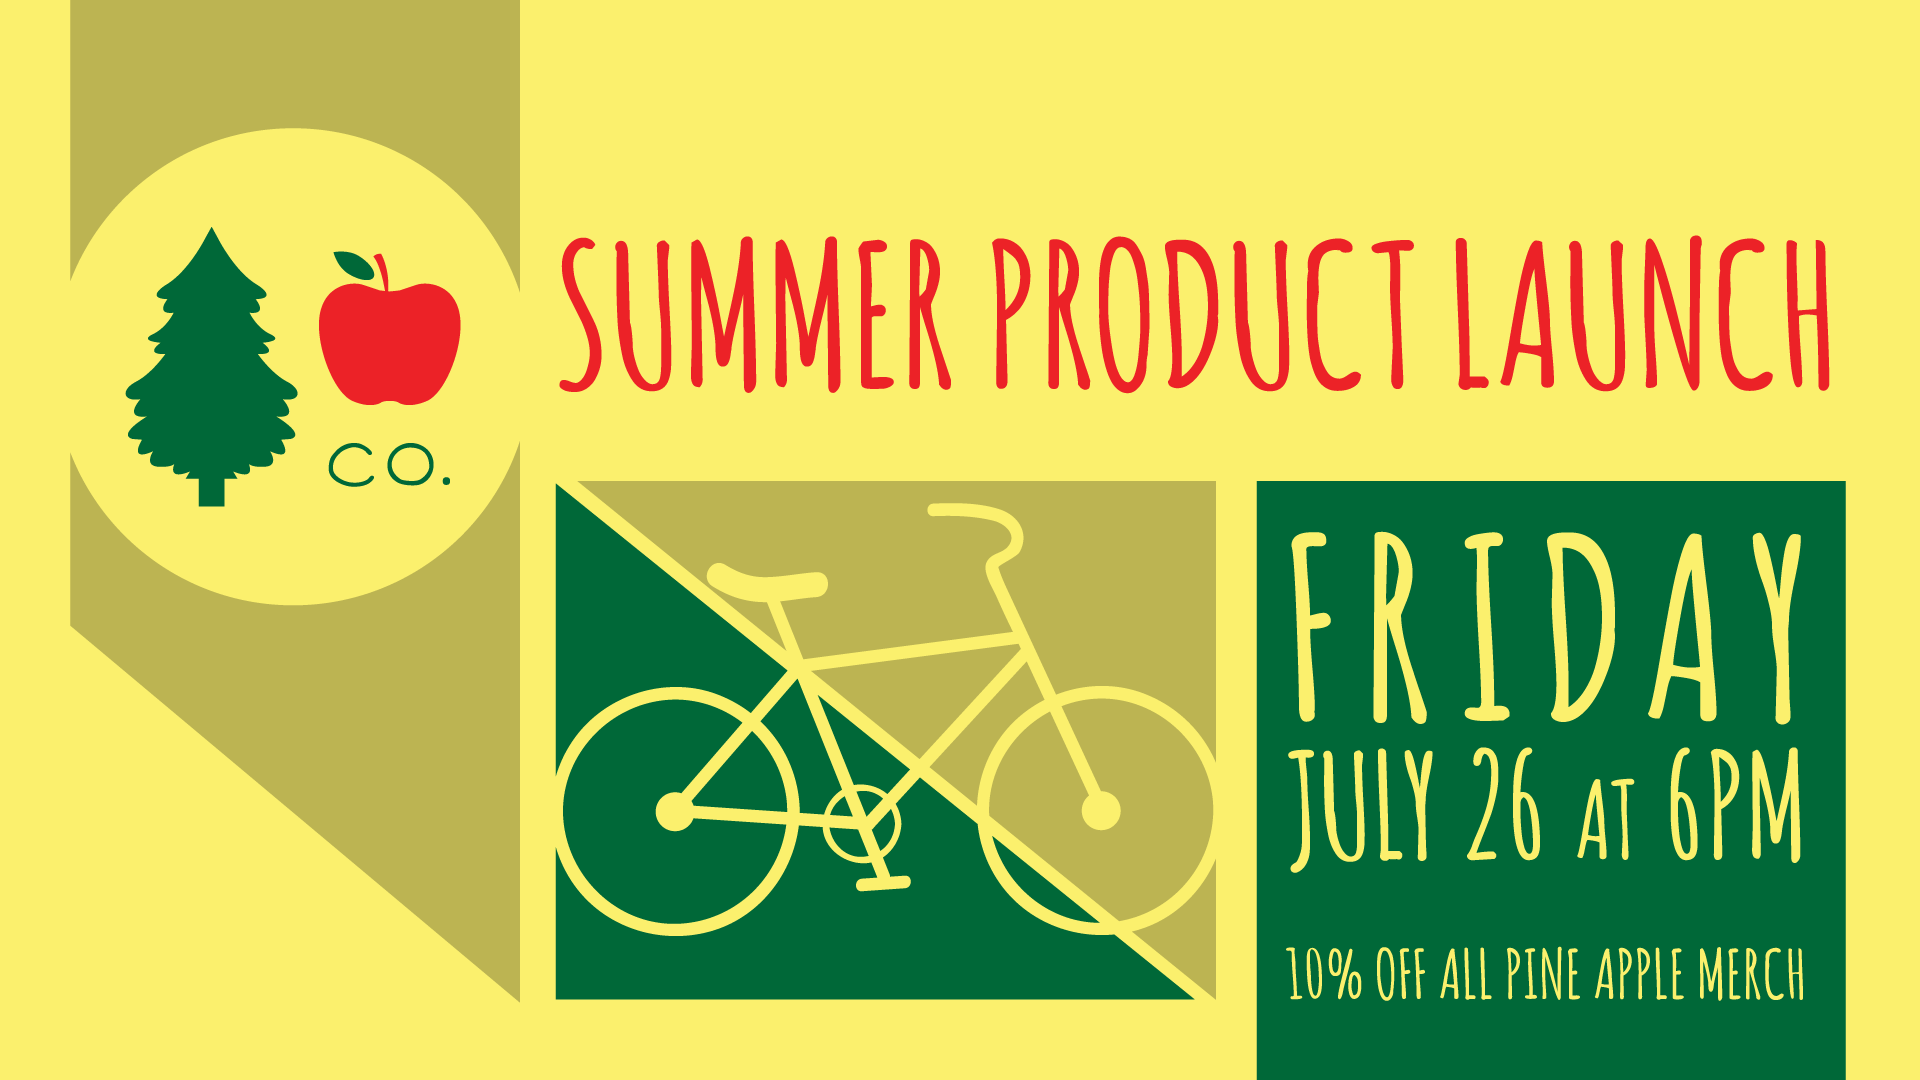 Summer Product Launch - Friday, July 26, 2019   6 - 10 PMWe're having a little get together to celebrate the launch of our NEW line of summer products! From 6 to 10 PM all Pine Apple Co. merch will be 10% off. That includes all prints, original art and handmade goods!